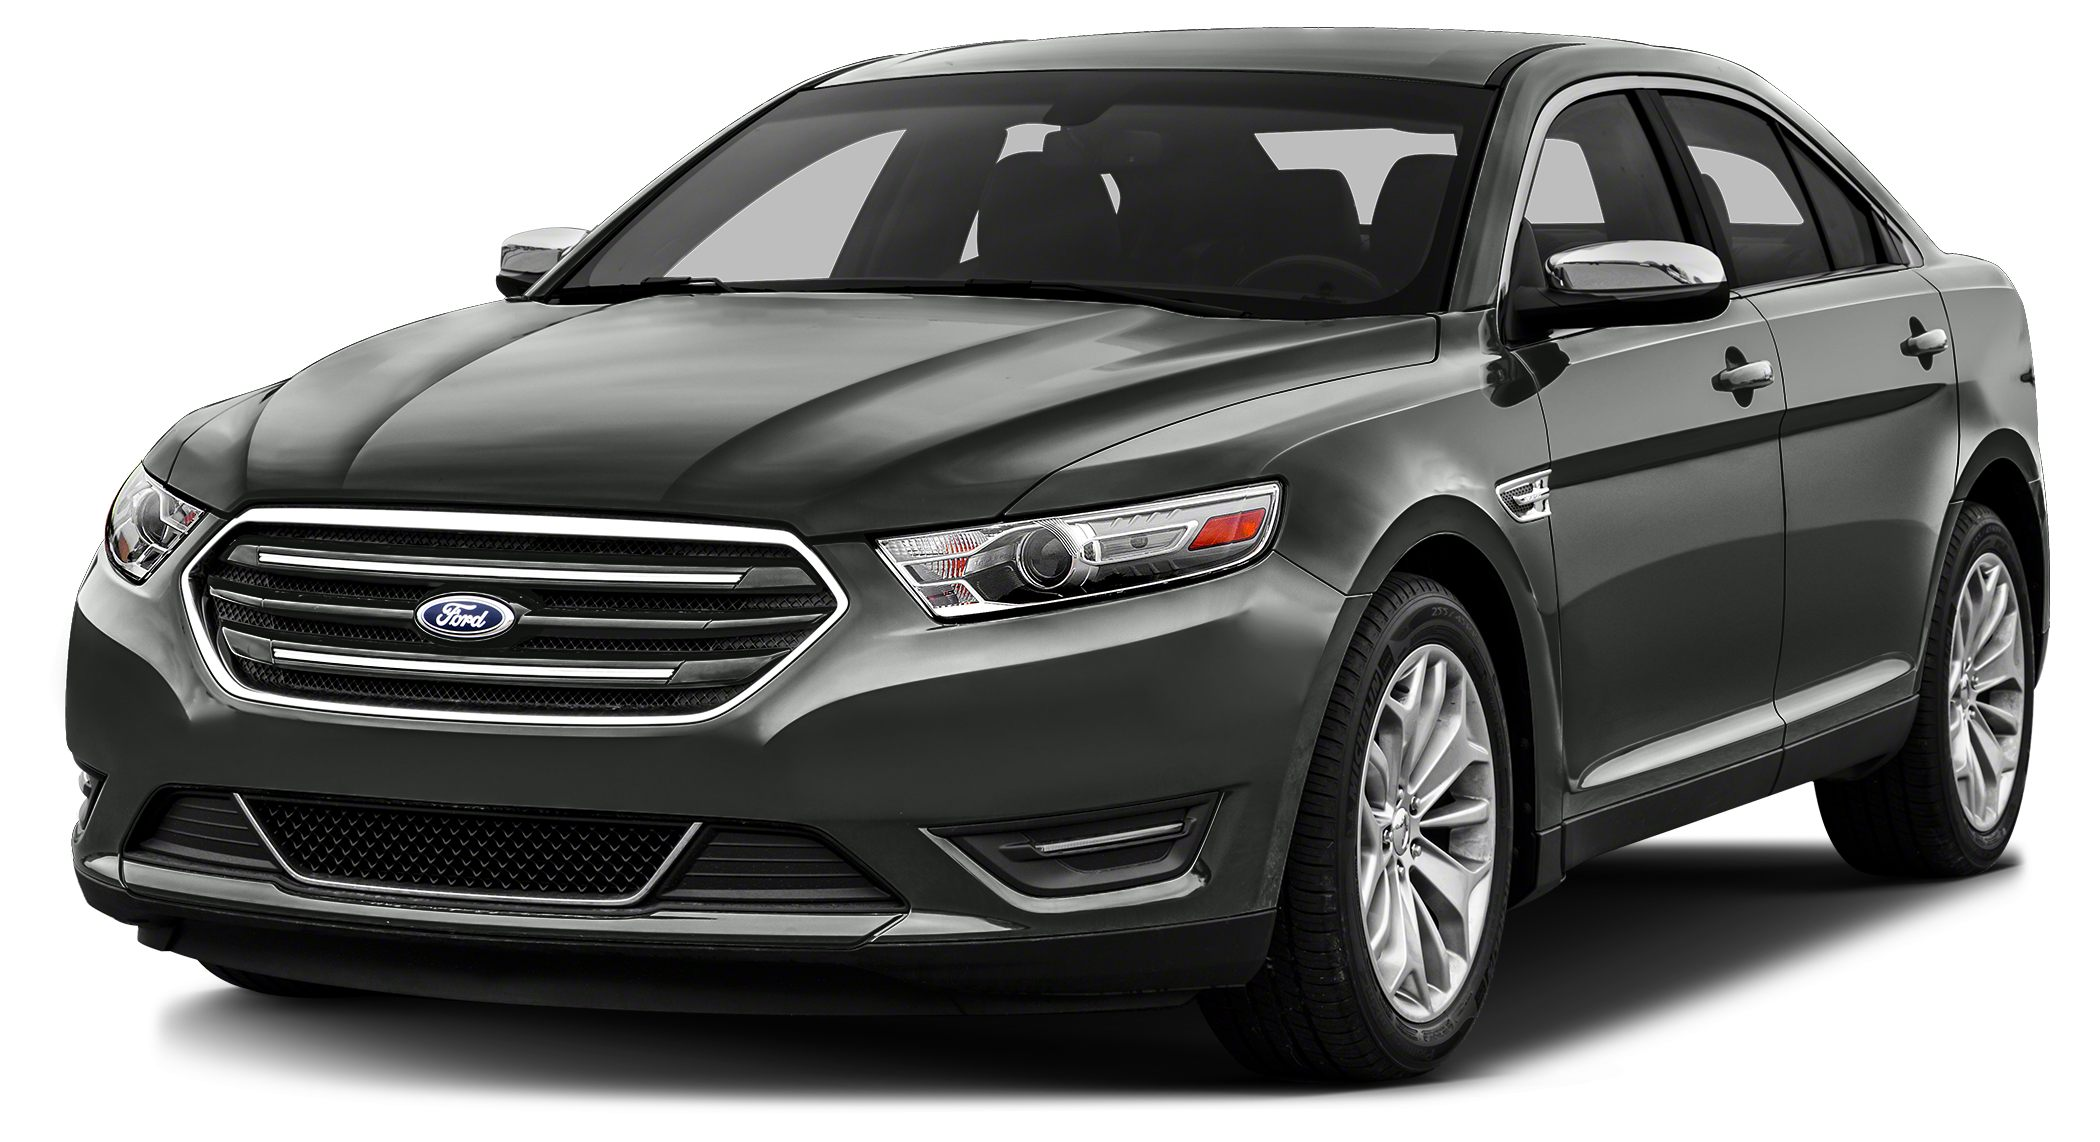 2016 Ford Taurus Limited The Ford Taurus has aggressive front and rear styling that signals a high